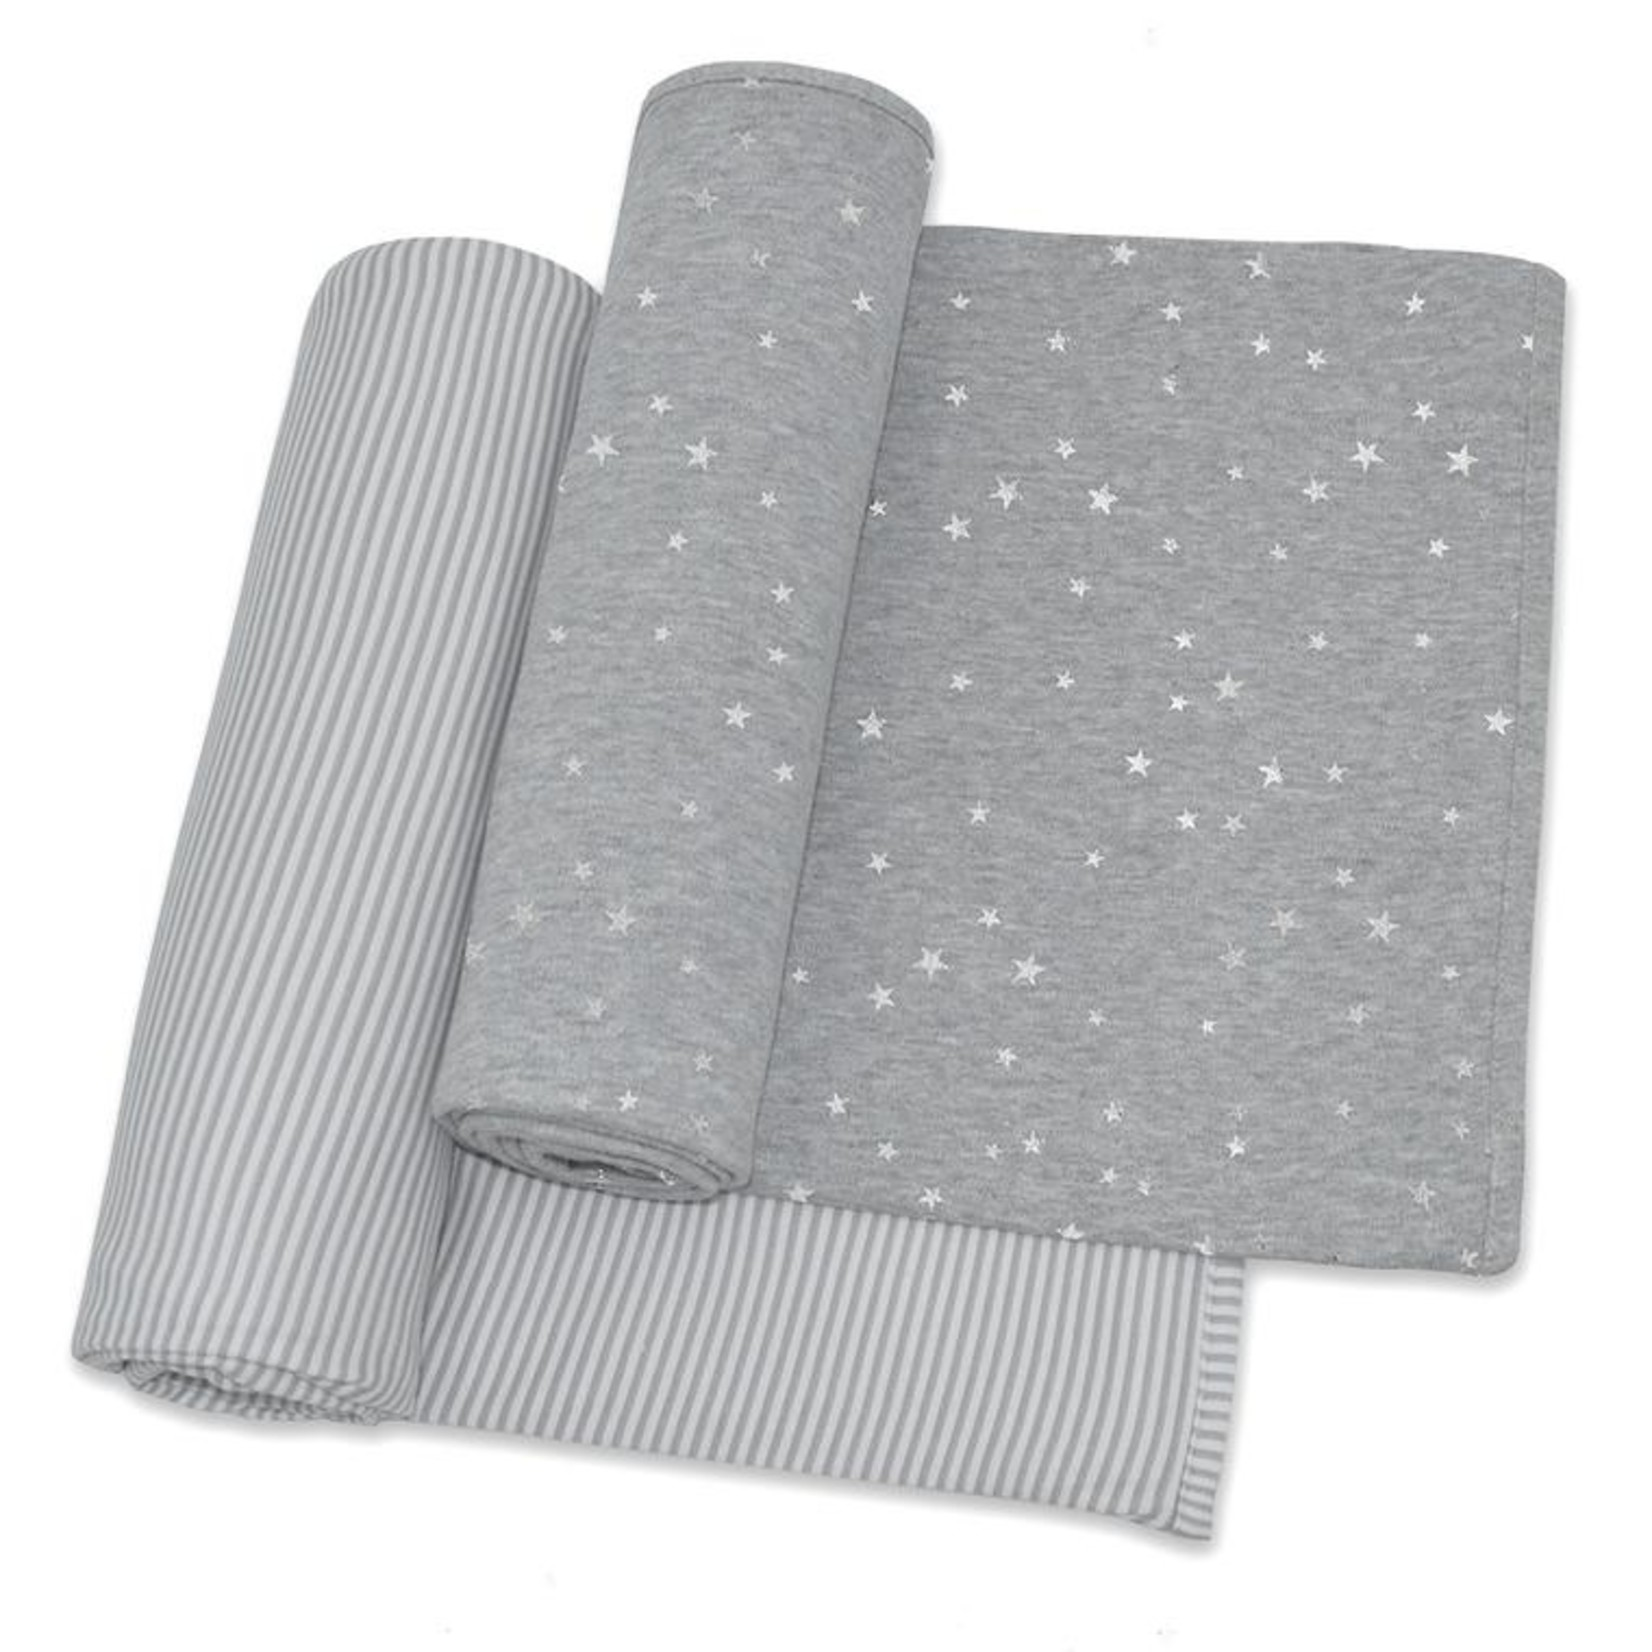 Living Textiles Living Textiles Jersey Wraps 2 Pack Silver Stars/Grey Stripe